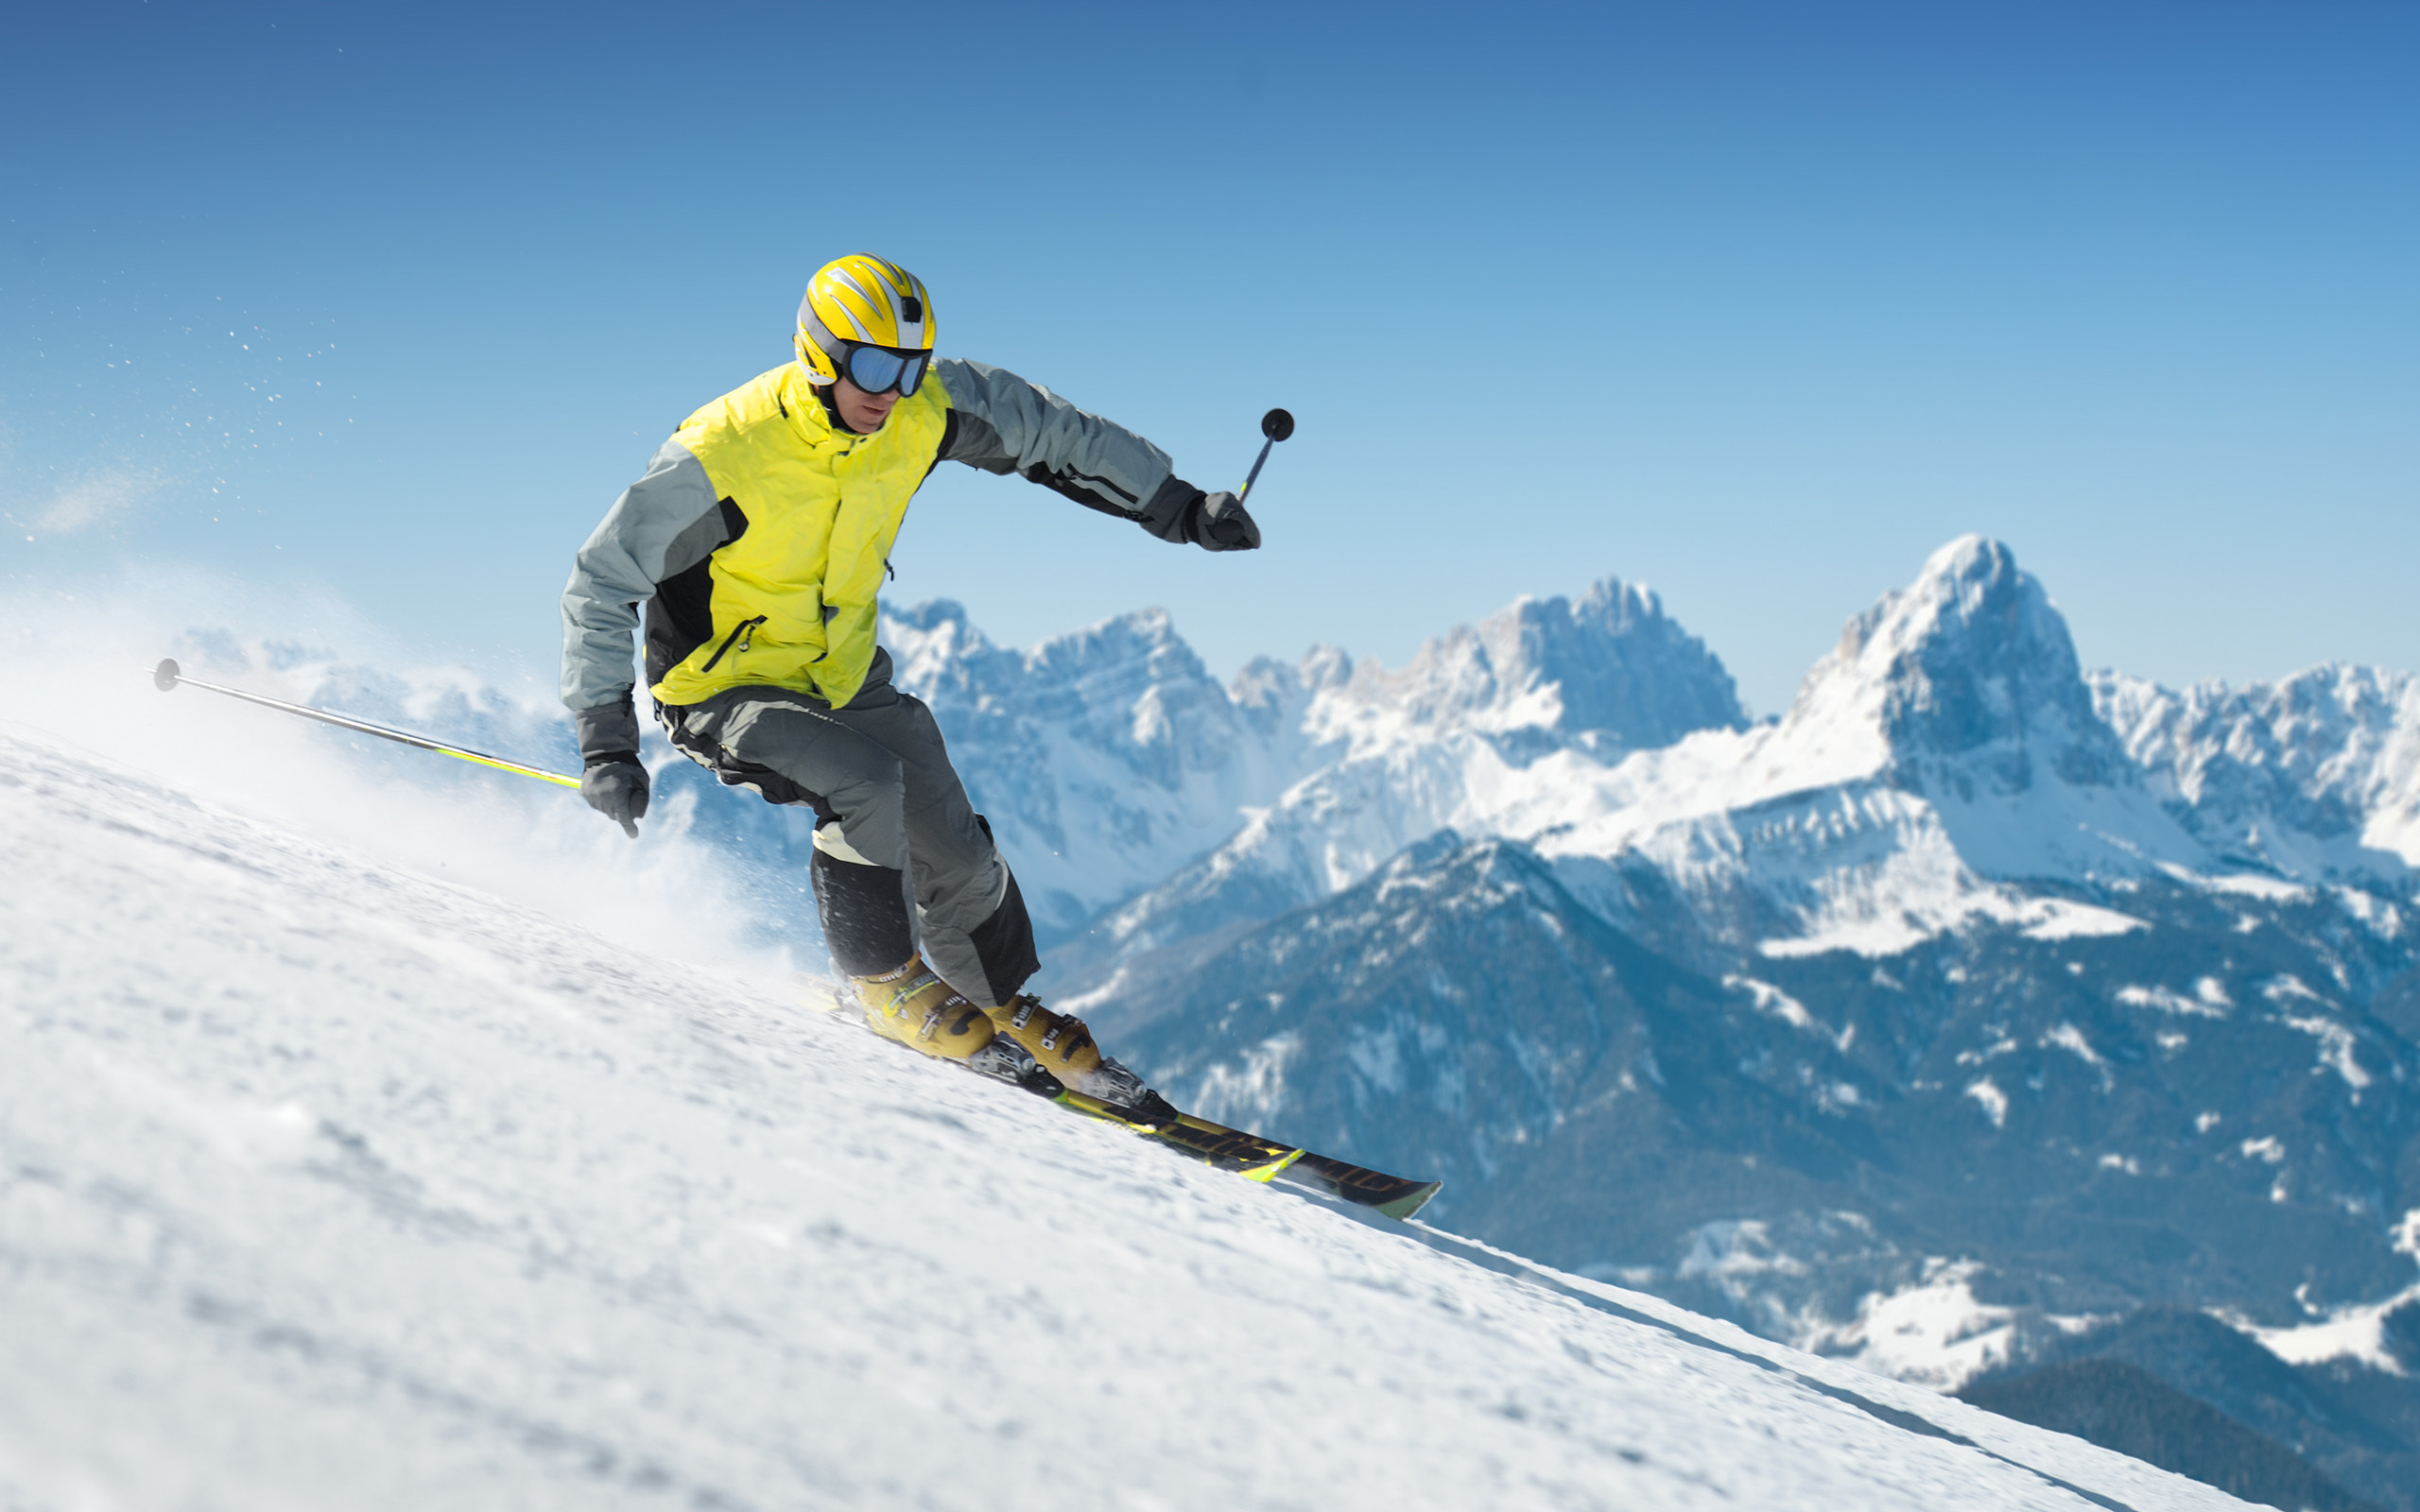 Skiing wallpapers images photos pictures backgrounds - Ski wallpaper ...